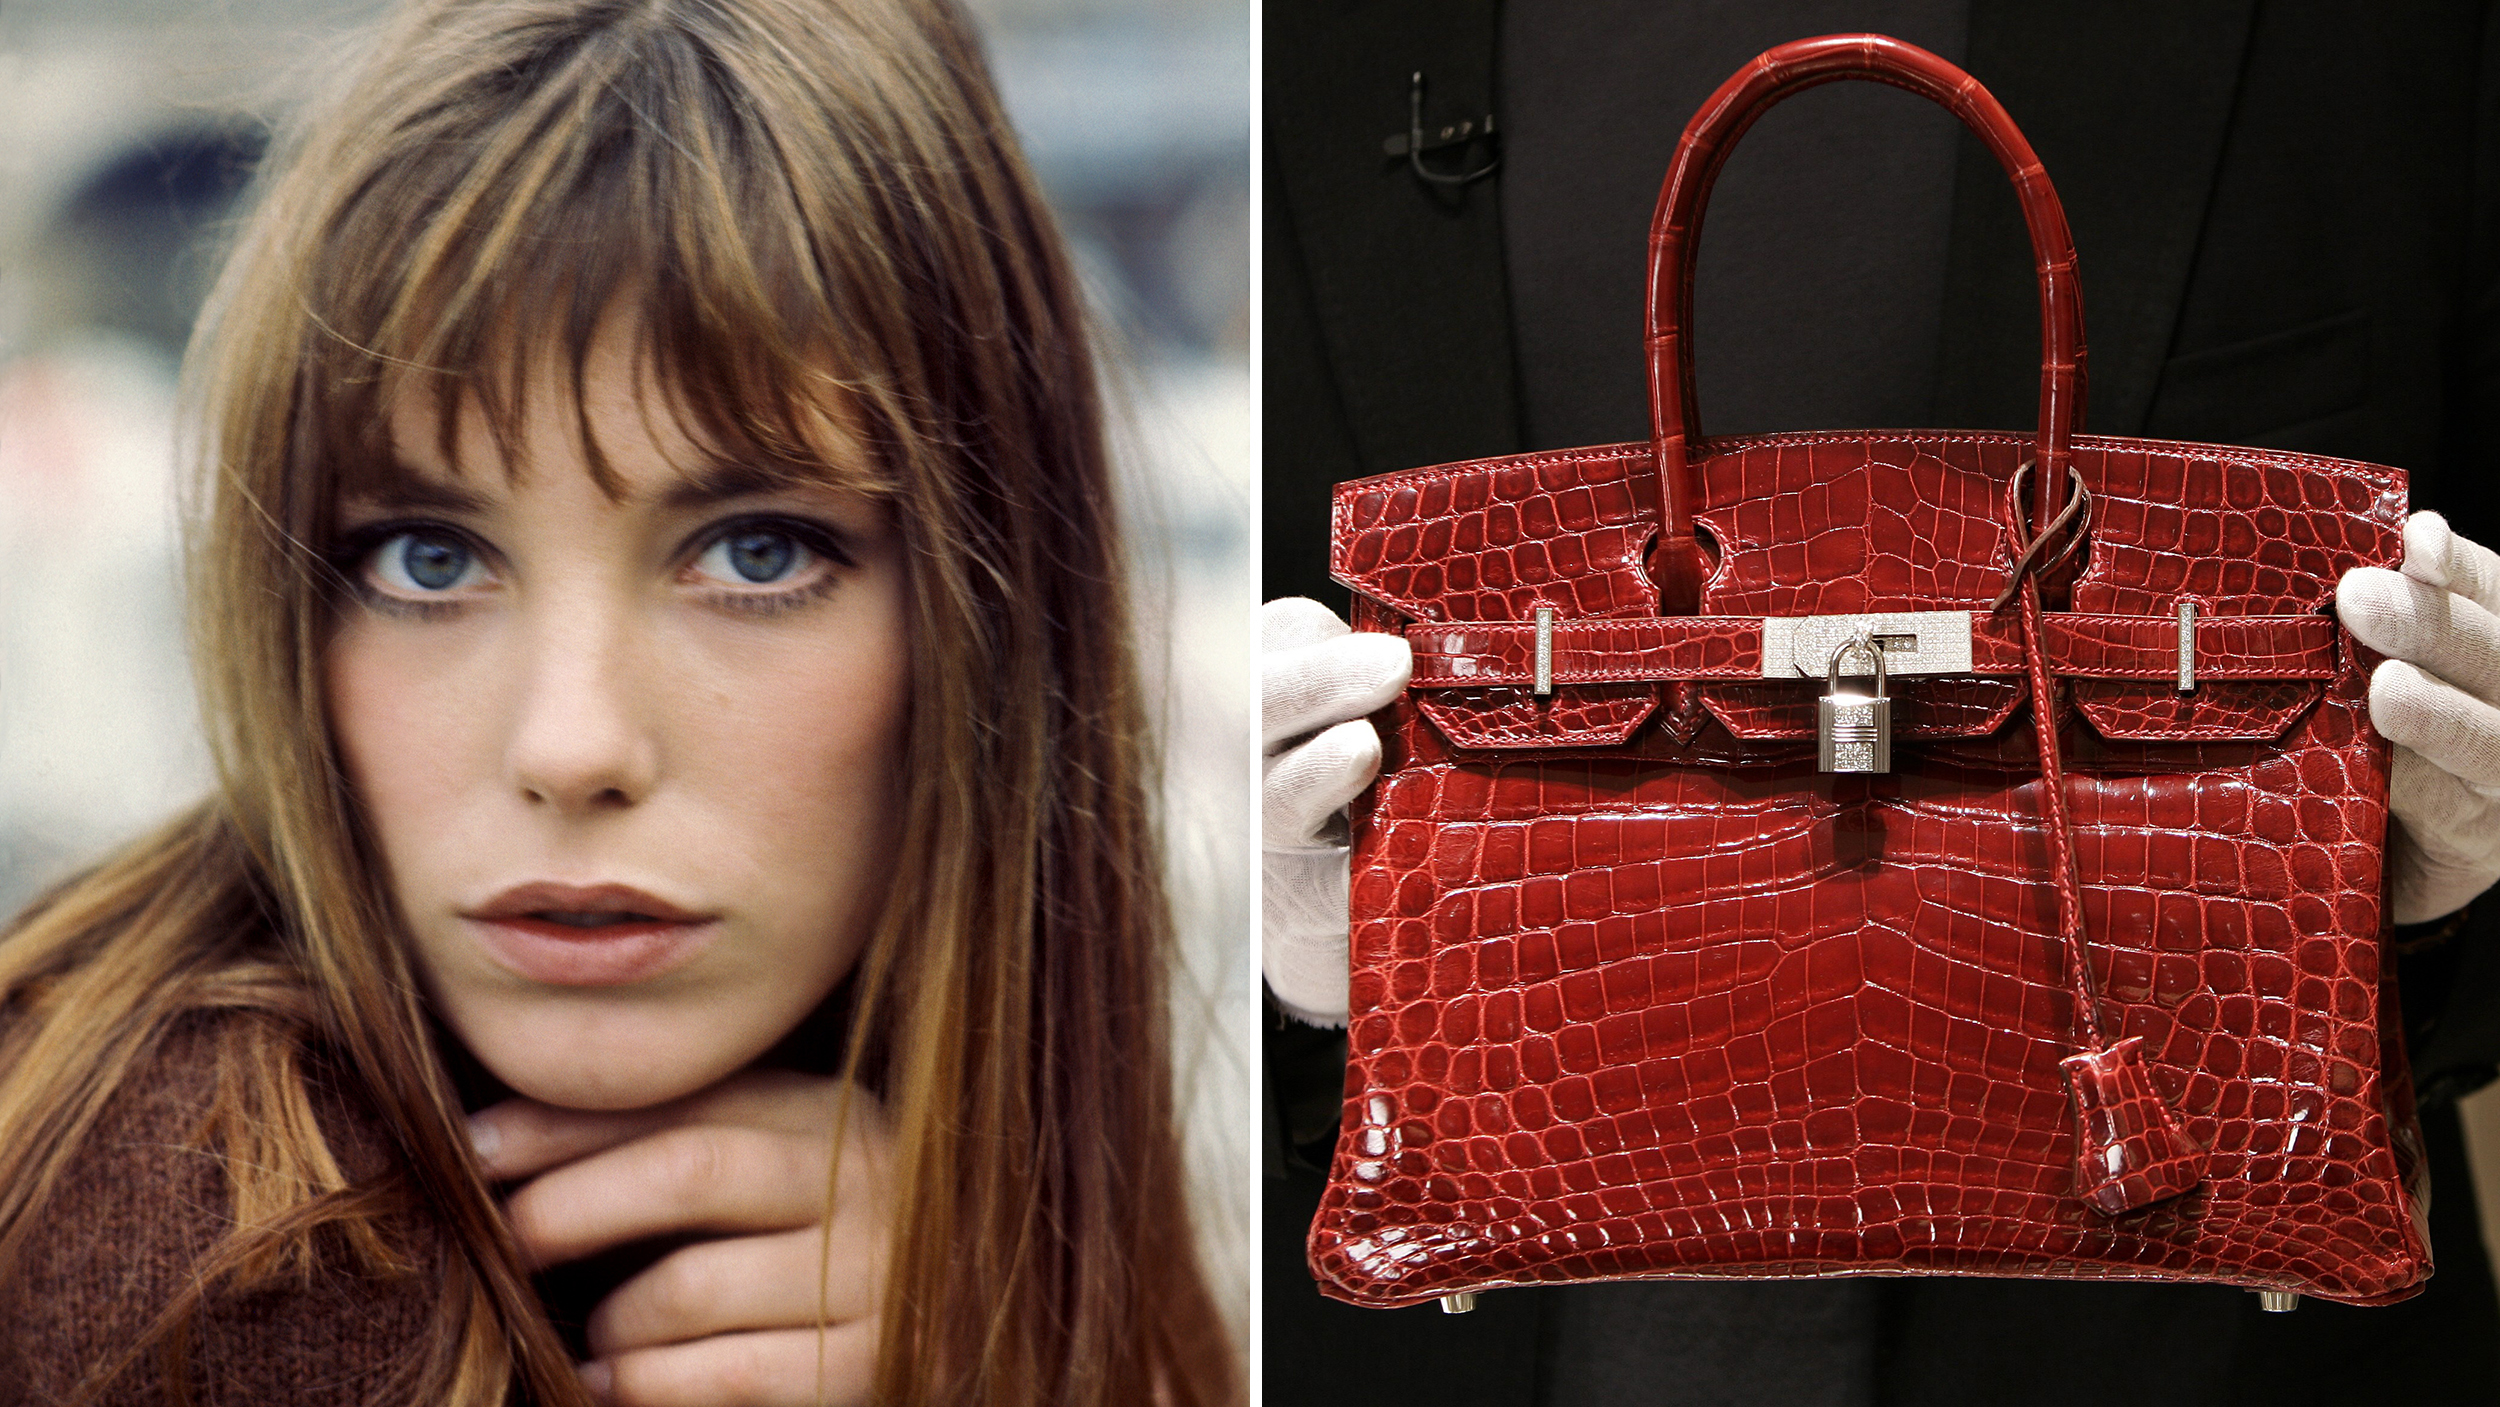 Jane Birkin Asks Hermès to Remove Her Name From Its IconicBag